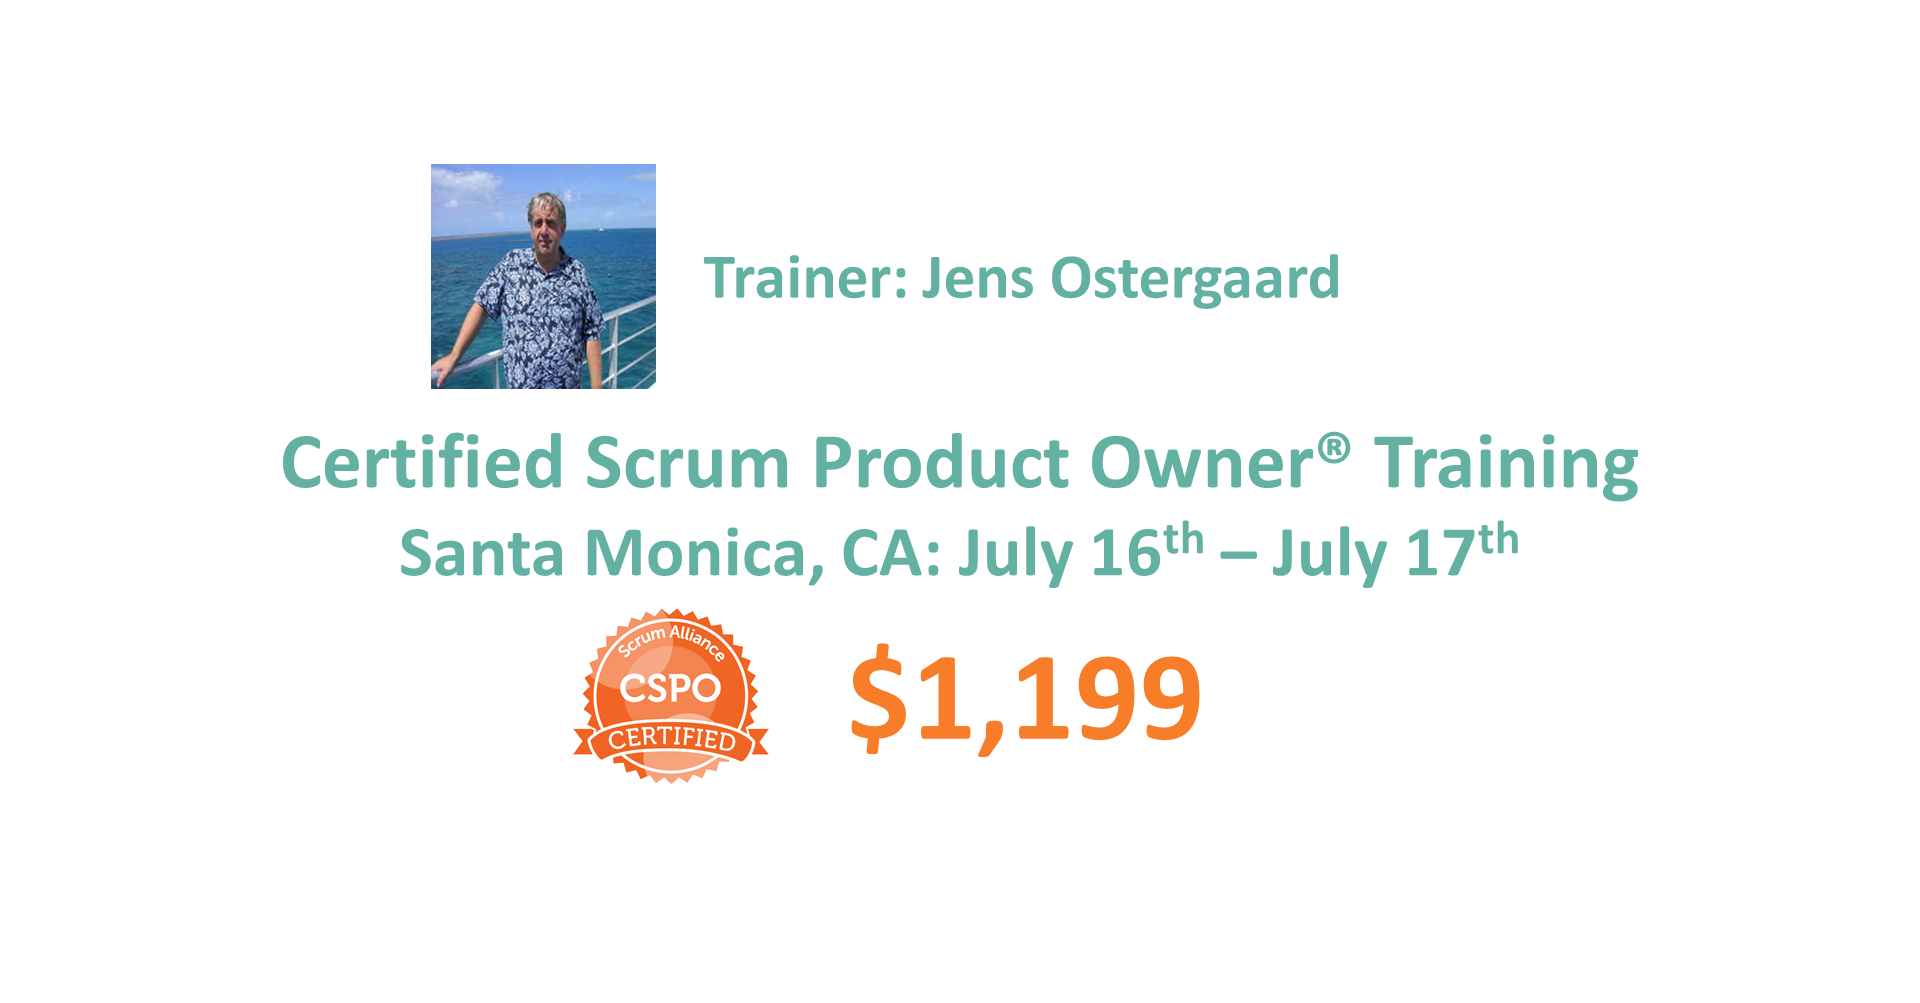 Certified Scrum Product Owner Training July 16 17 Santa Monica